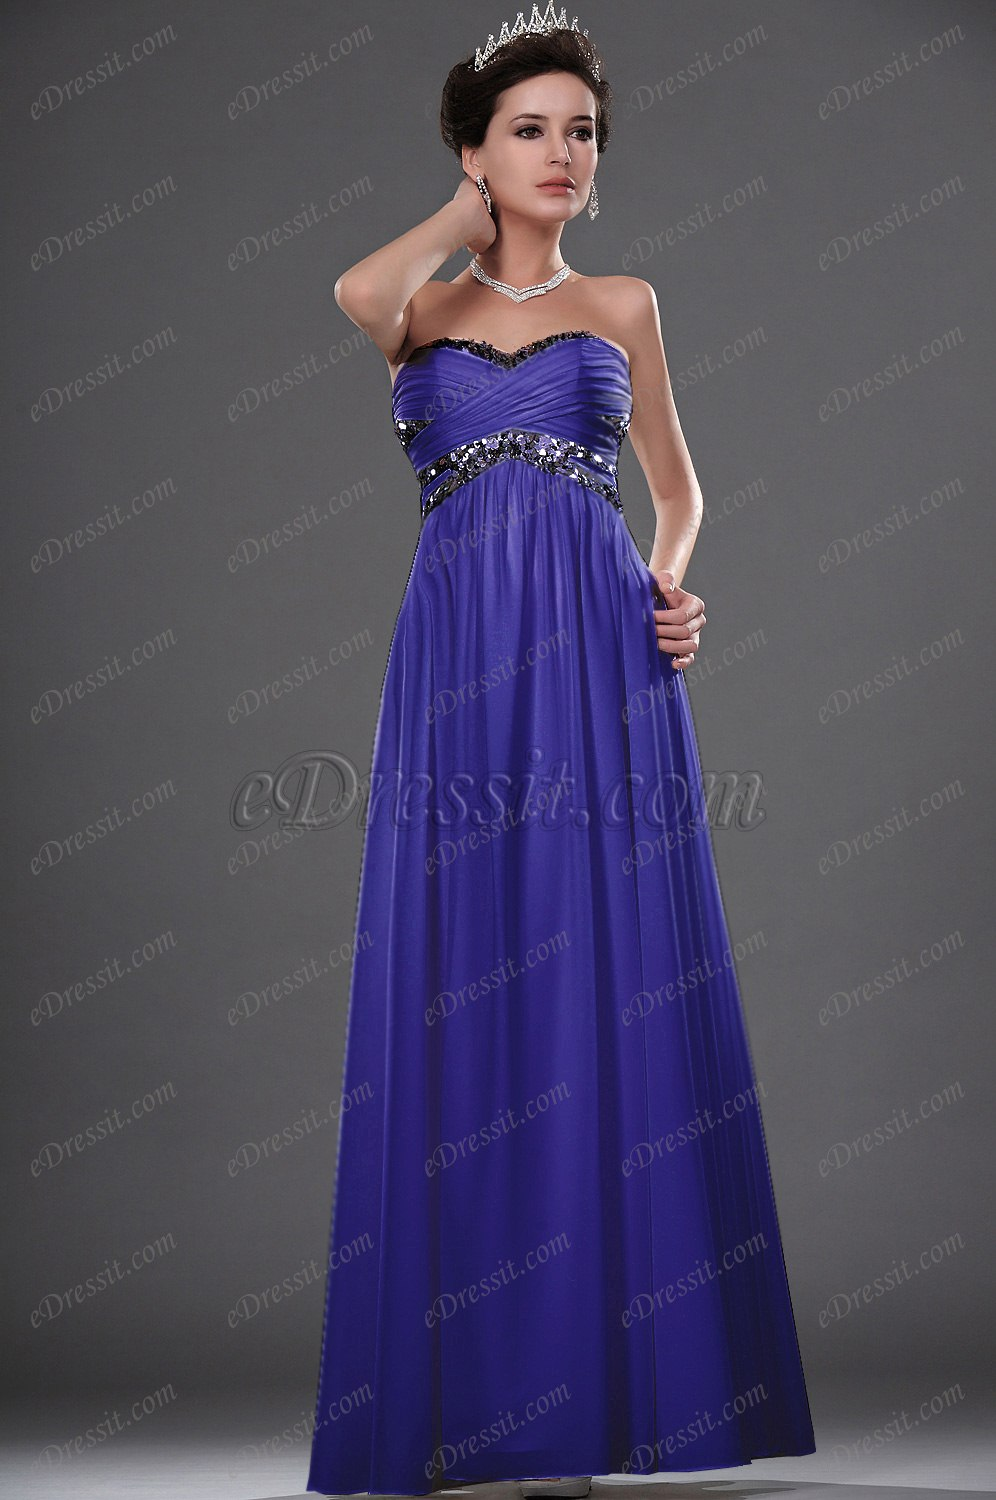 Clearance Sale !eDressit New Strapless Sequins Evening Dress (01111607D)